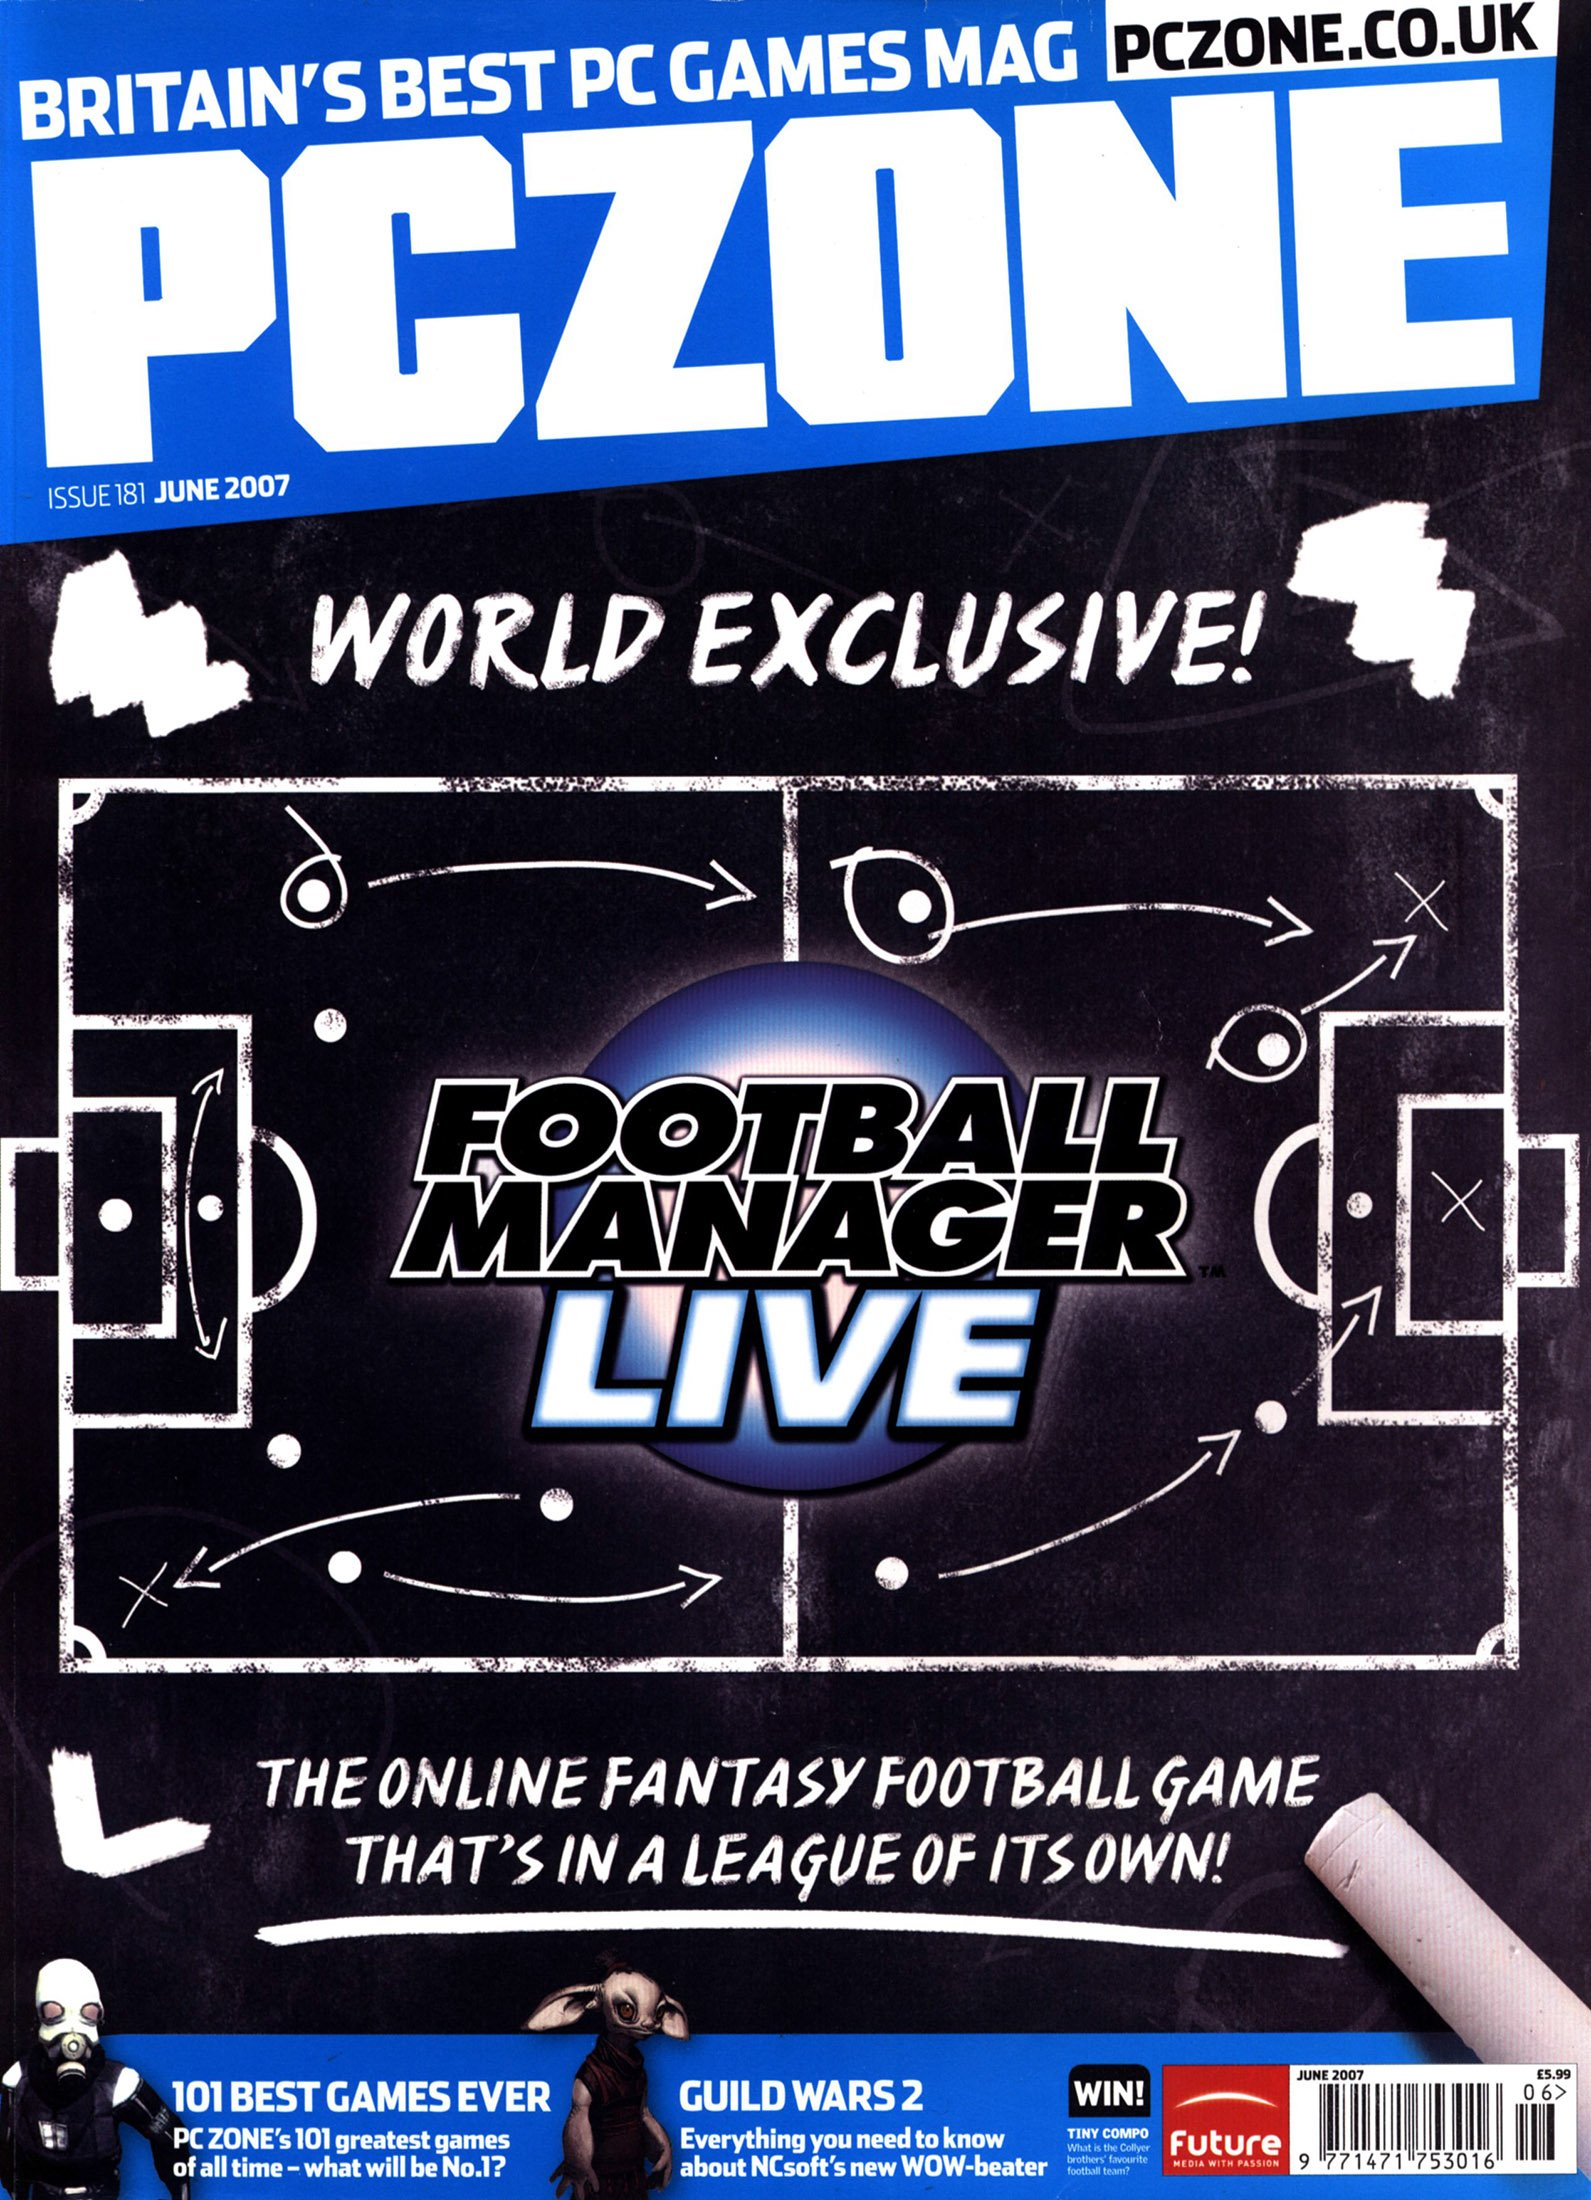 PC Zone Issue 181 (June 2007)